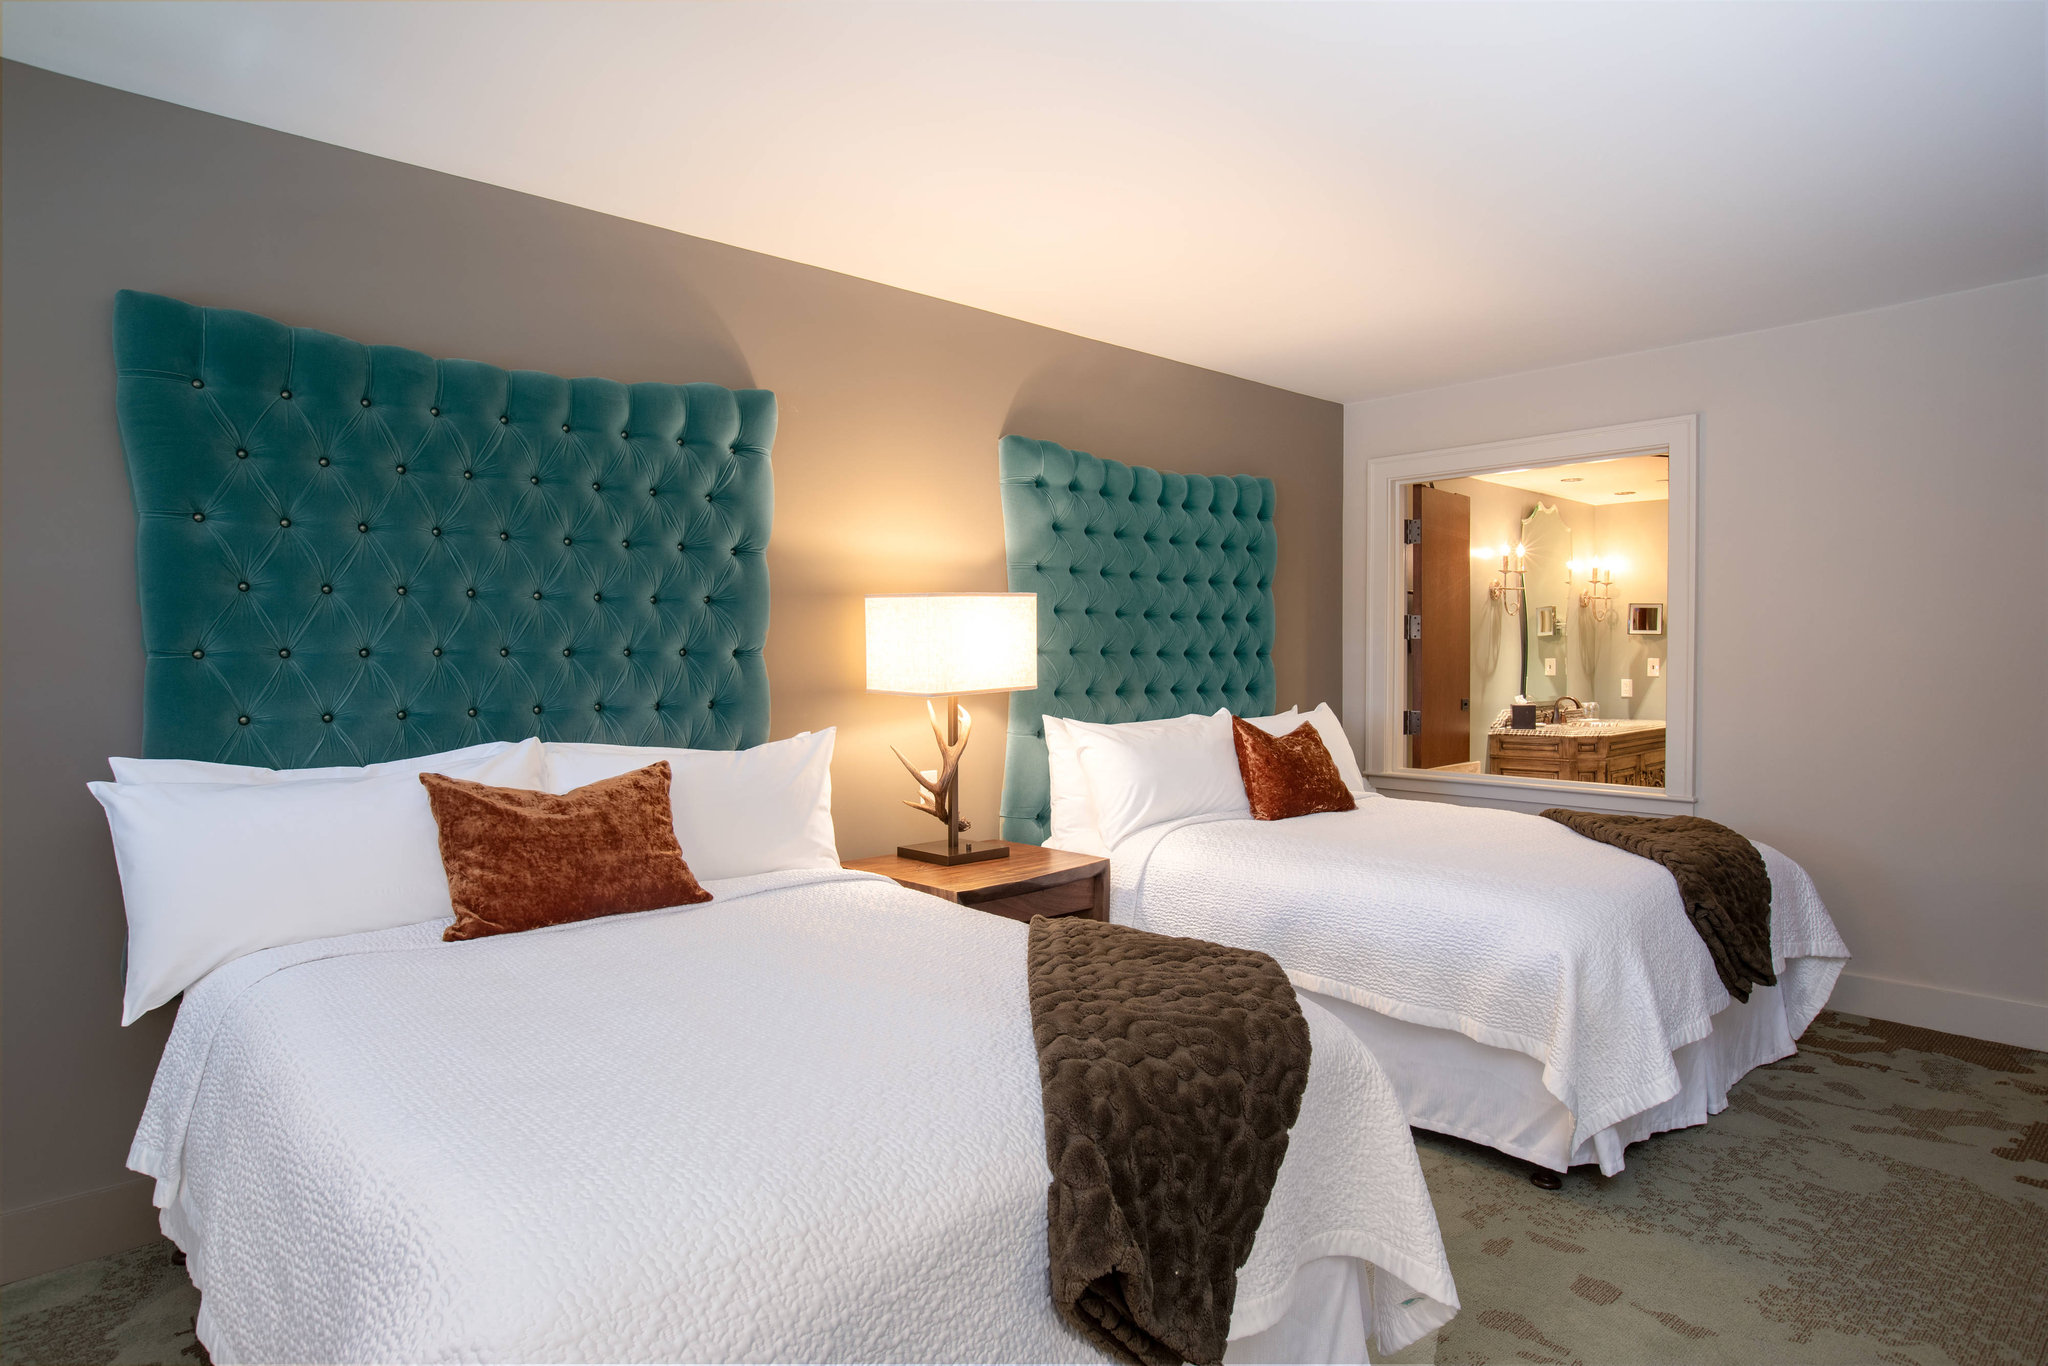 bed in a wall design woodland bedroom decor forest themed.htm meetings and events at grand bohemian hotel asheville  autograph  meetings and events at grand bohemian